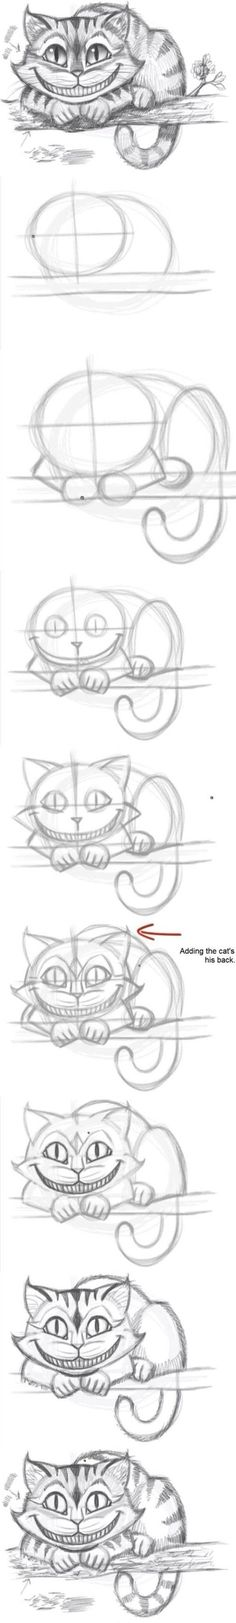 DIY Easily Draw the Cheshire Cat Tutorial / UsefulDIY.com on imgfave